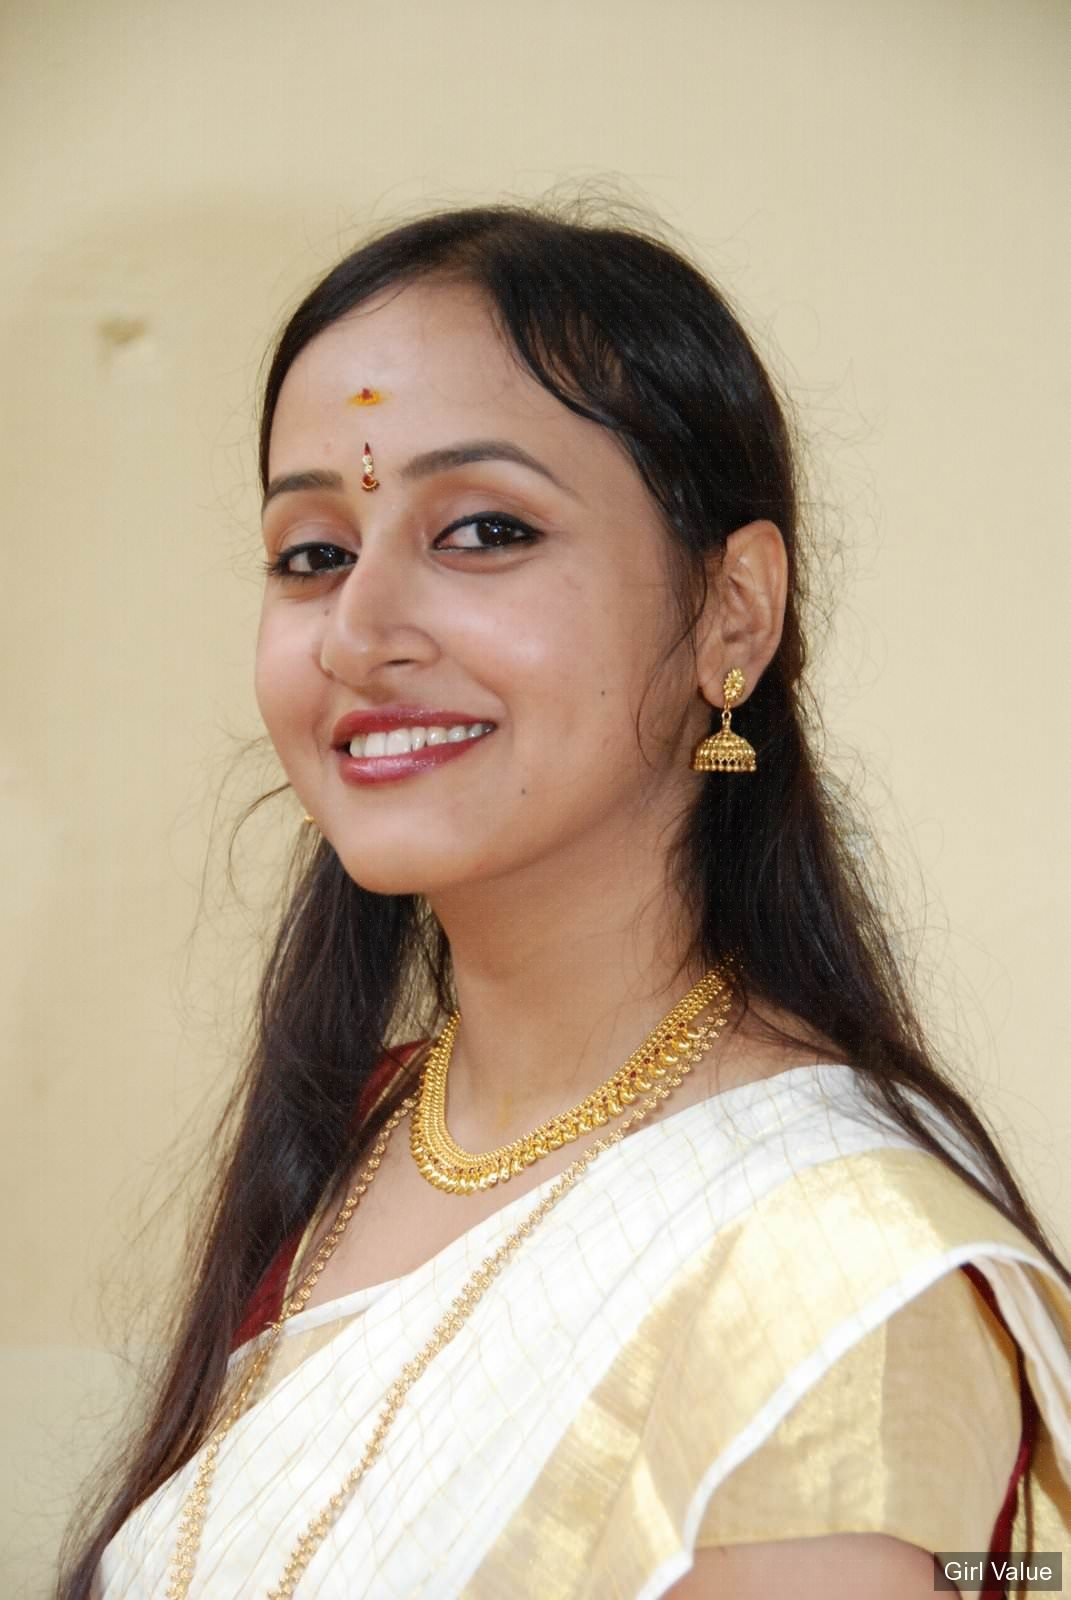 Indian Mallu Girl In Golden Saree